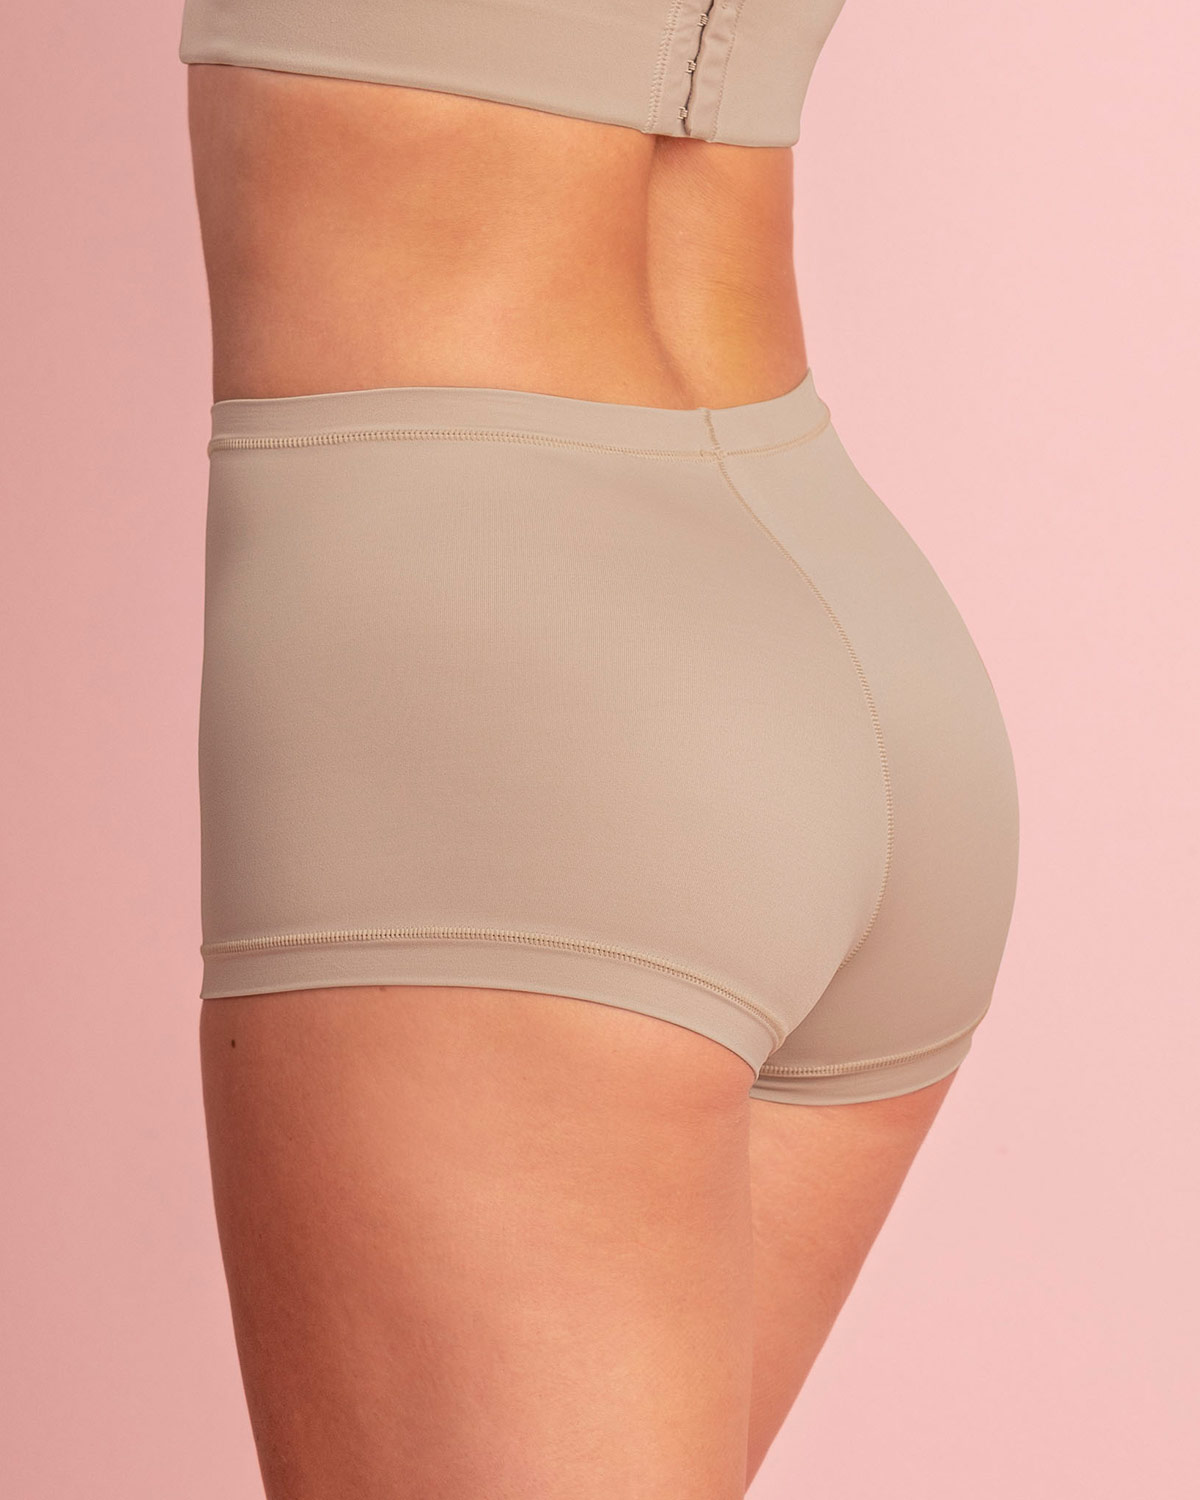 perfect fit boyshort style panty--MainImage